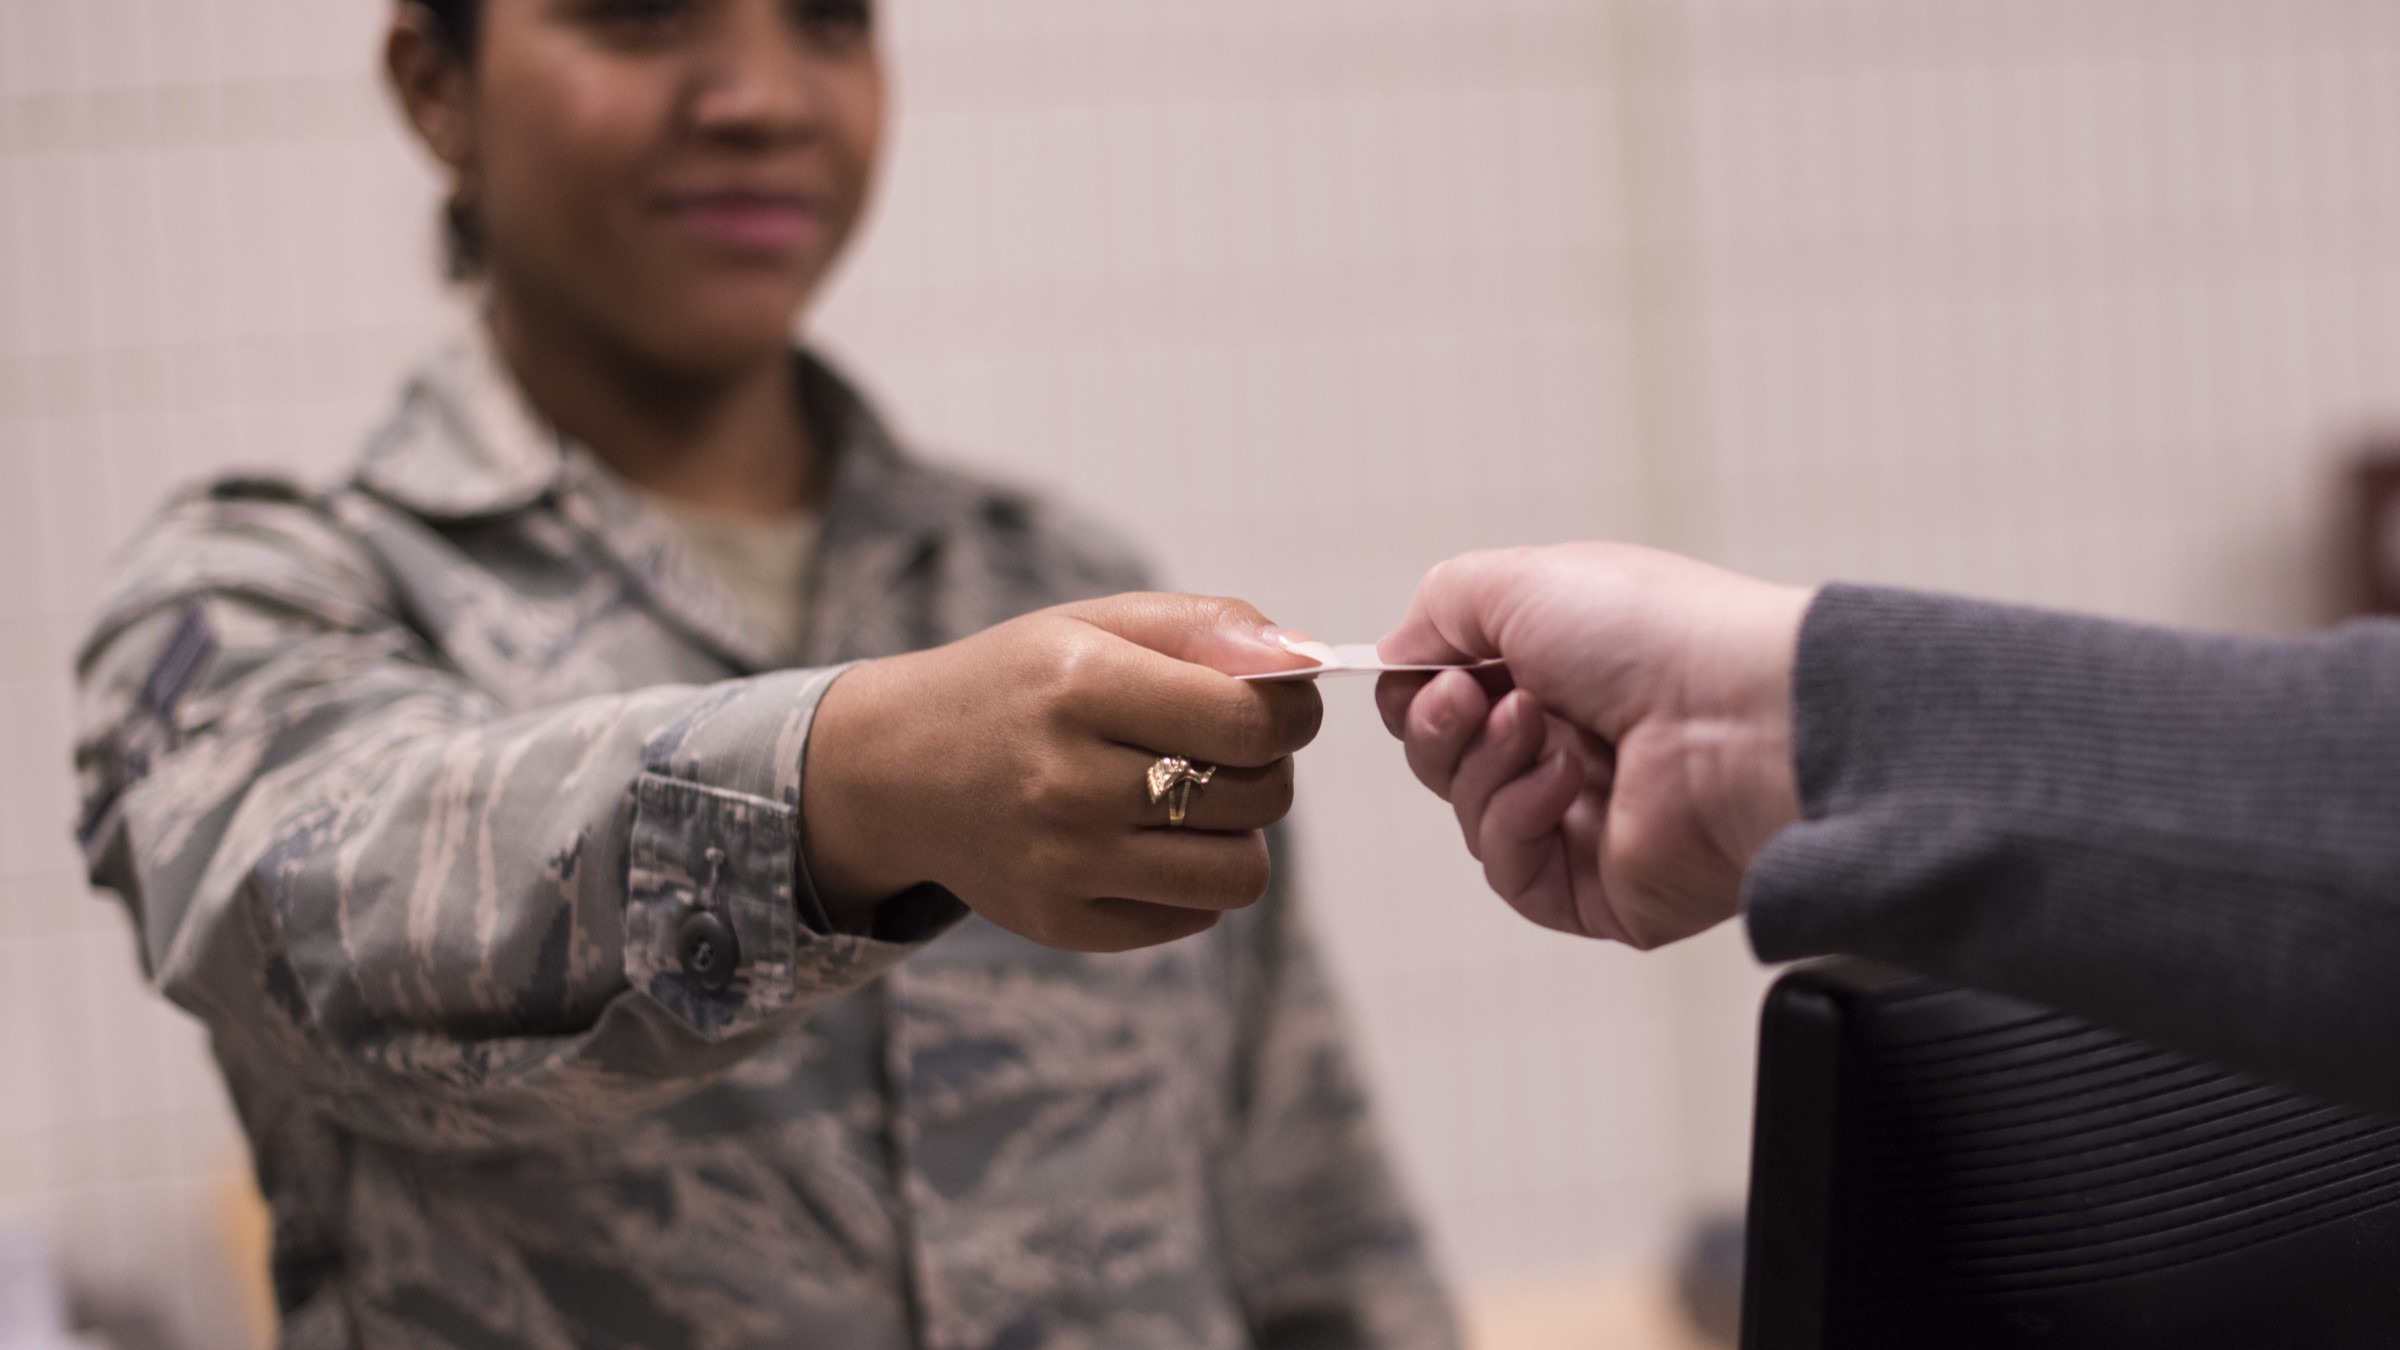 Service member receiving an ID card